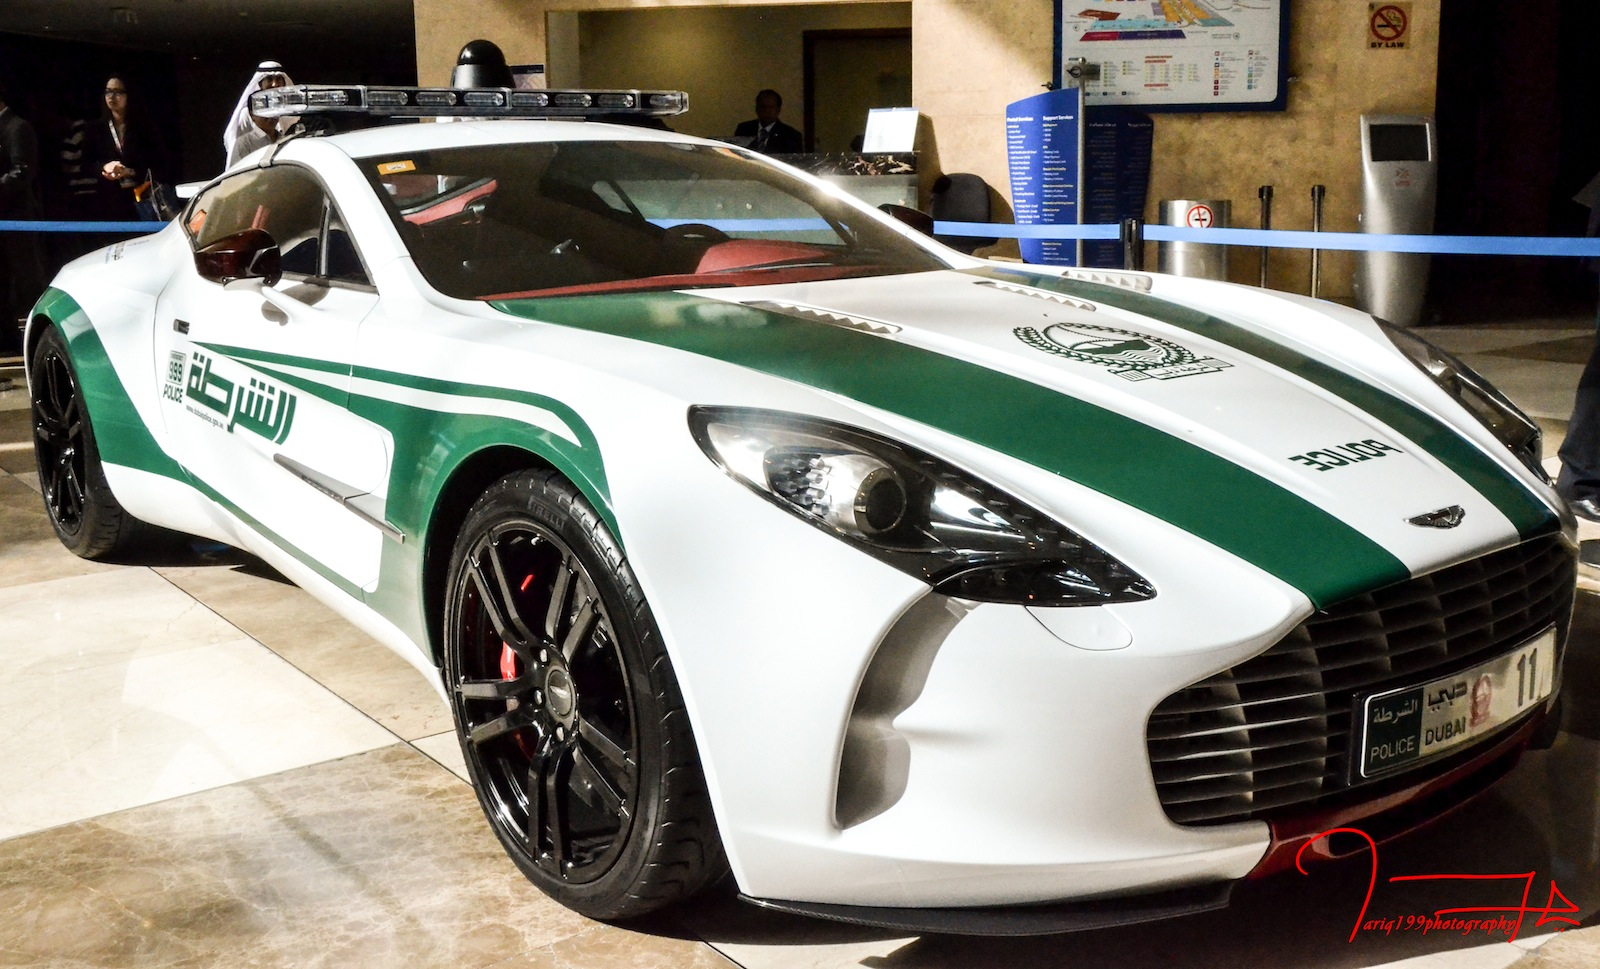 Dubai Police Cars Wallpapers The Supercar Police Of Dubai Moto Networks